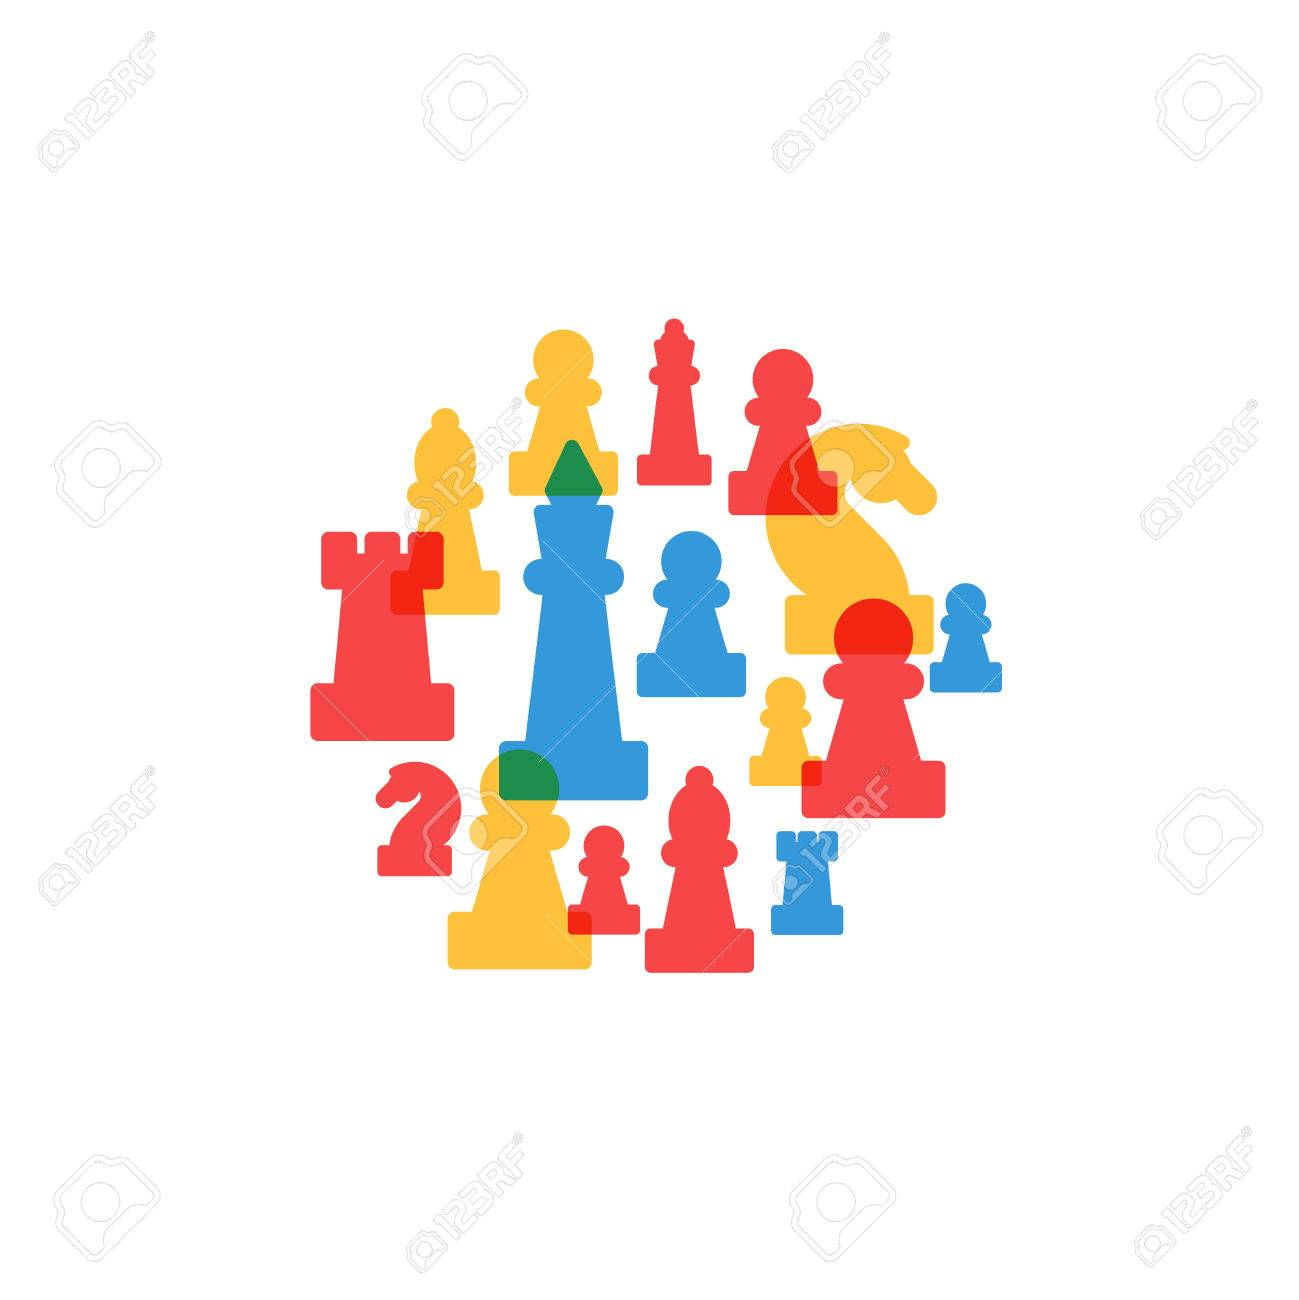 Colorful chess pieces in circle, chess club or school, competition or strategy concept. - 49575787